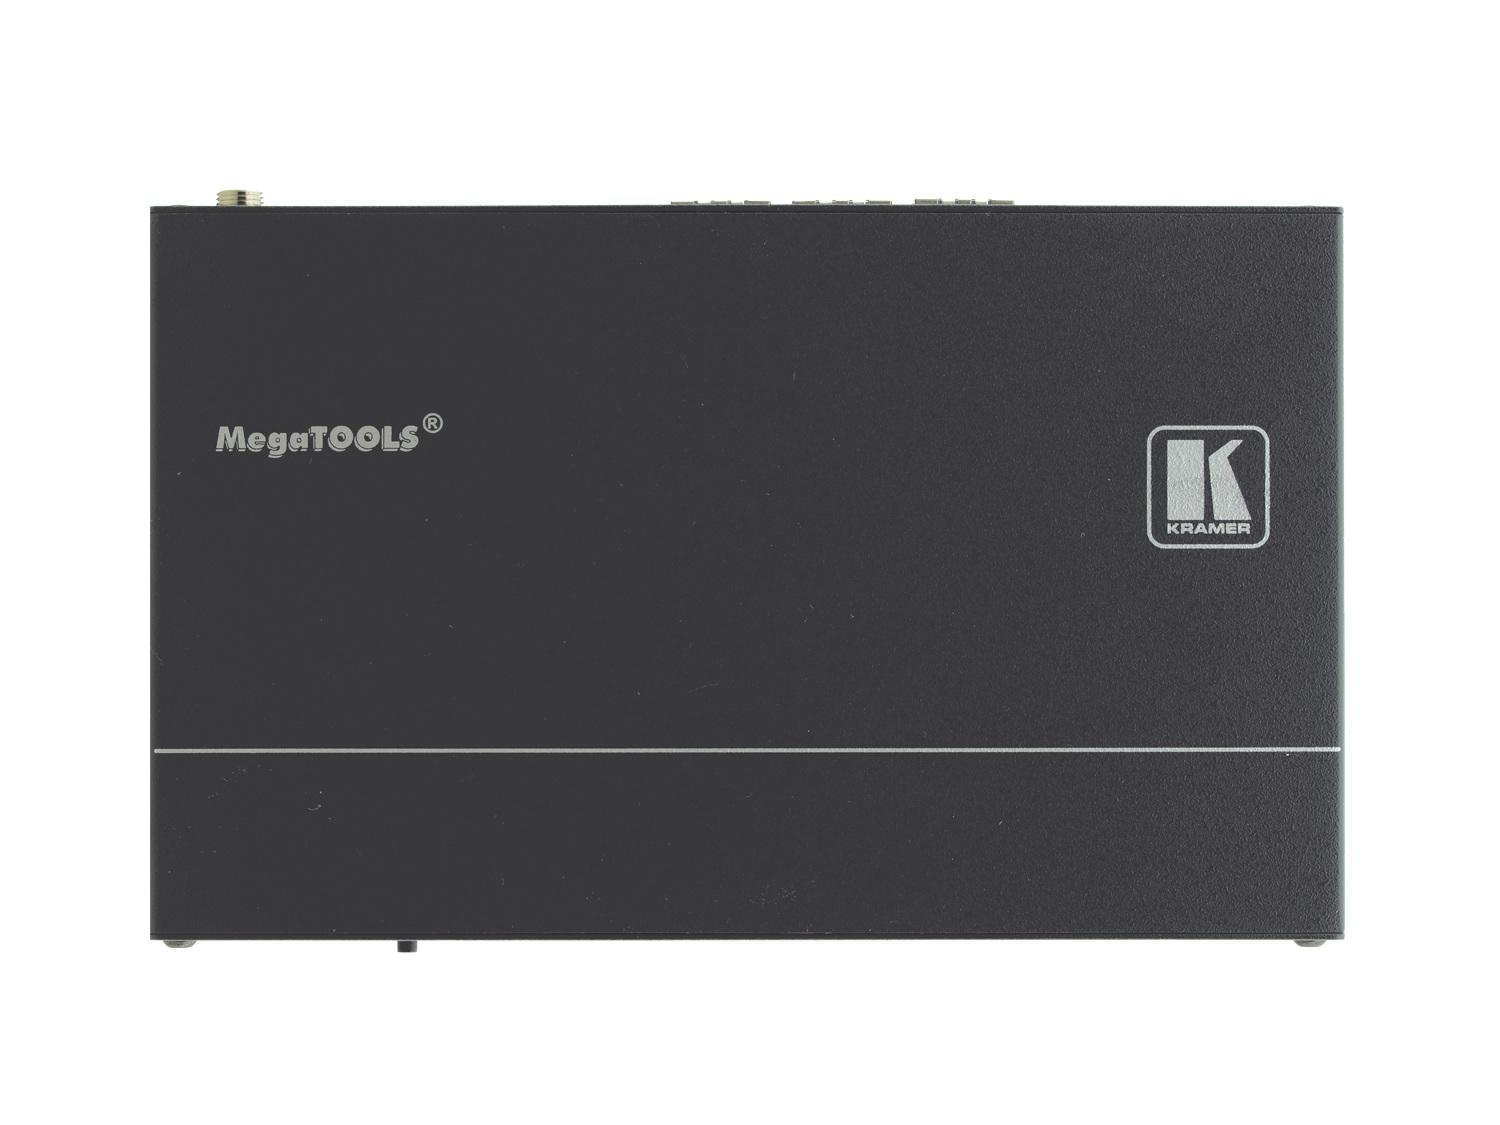 VM-3HDT 1x3plus1 4K60 4x2x0 HDMI to Long-Reach HDBaseT Distribution Amplifier by Kramer